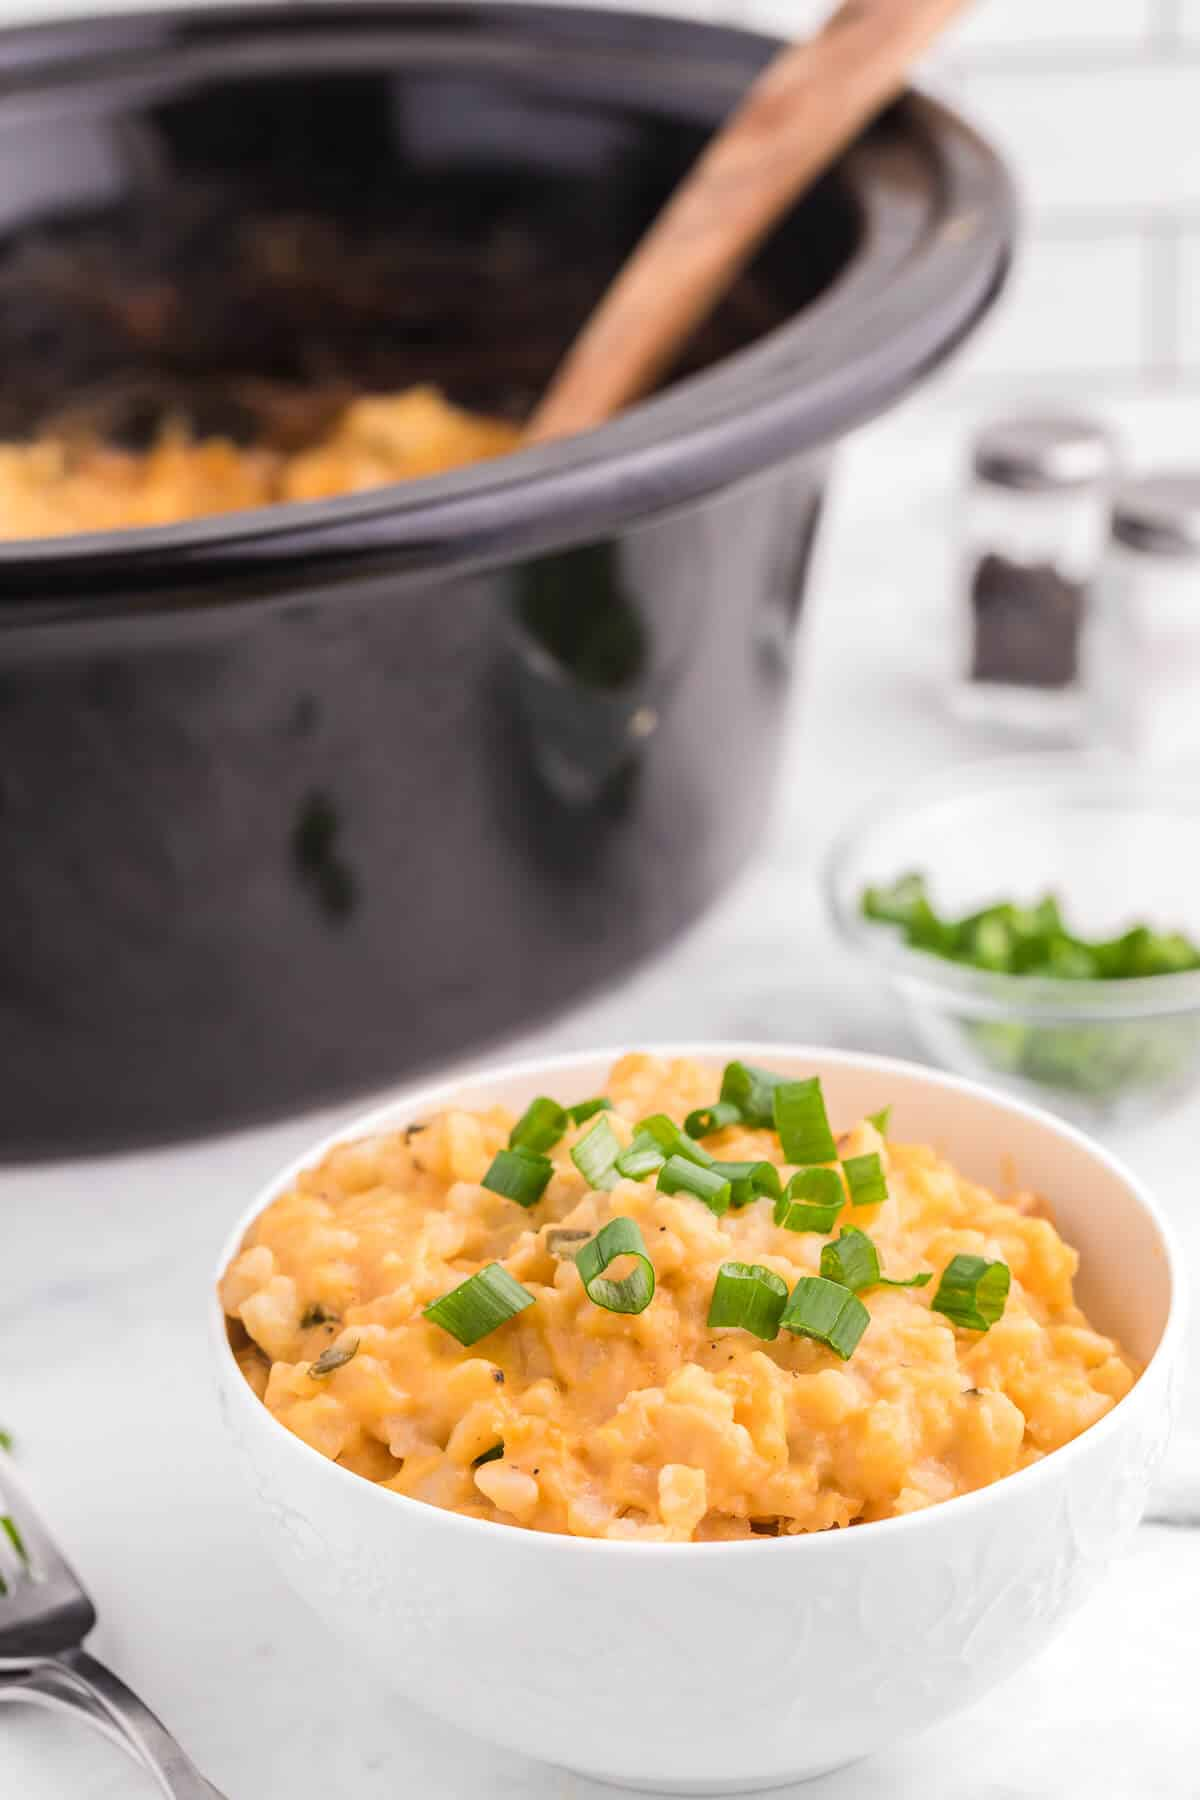 Slow Cooker Cheesy Potatoes is a delicious and hearty side dish to pair with your weeknight dinner. Frozen hash browns, canned cheese soup and a few other ingredients are all you need for this easy potato recipe.